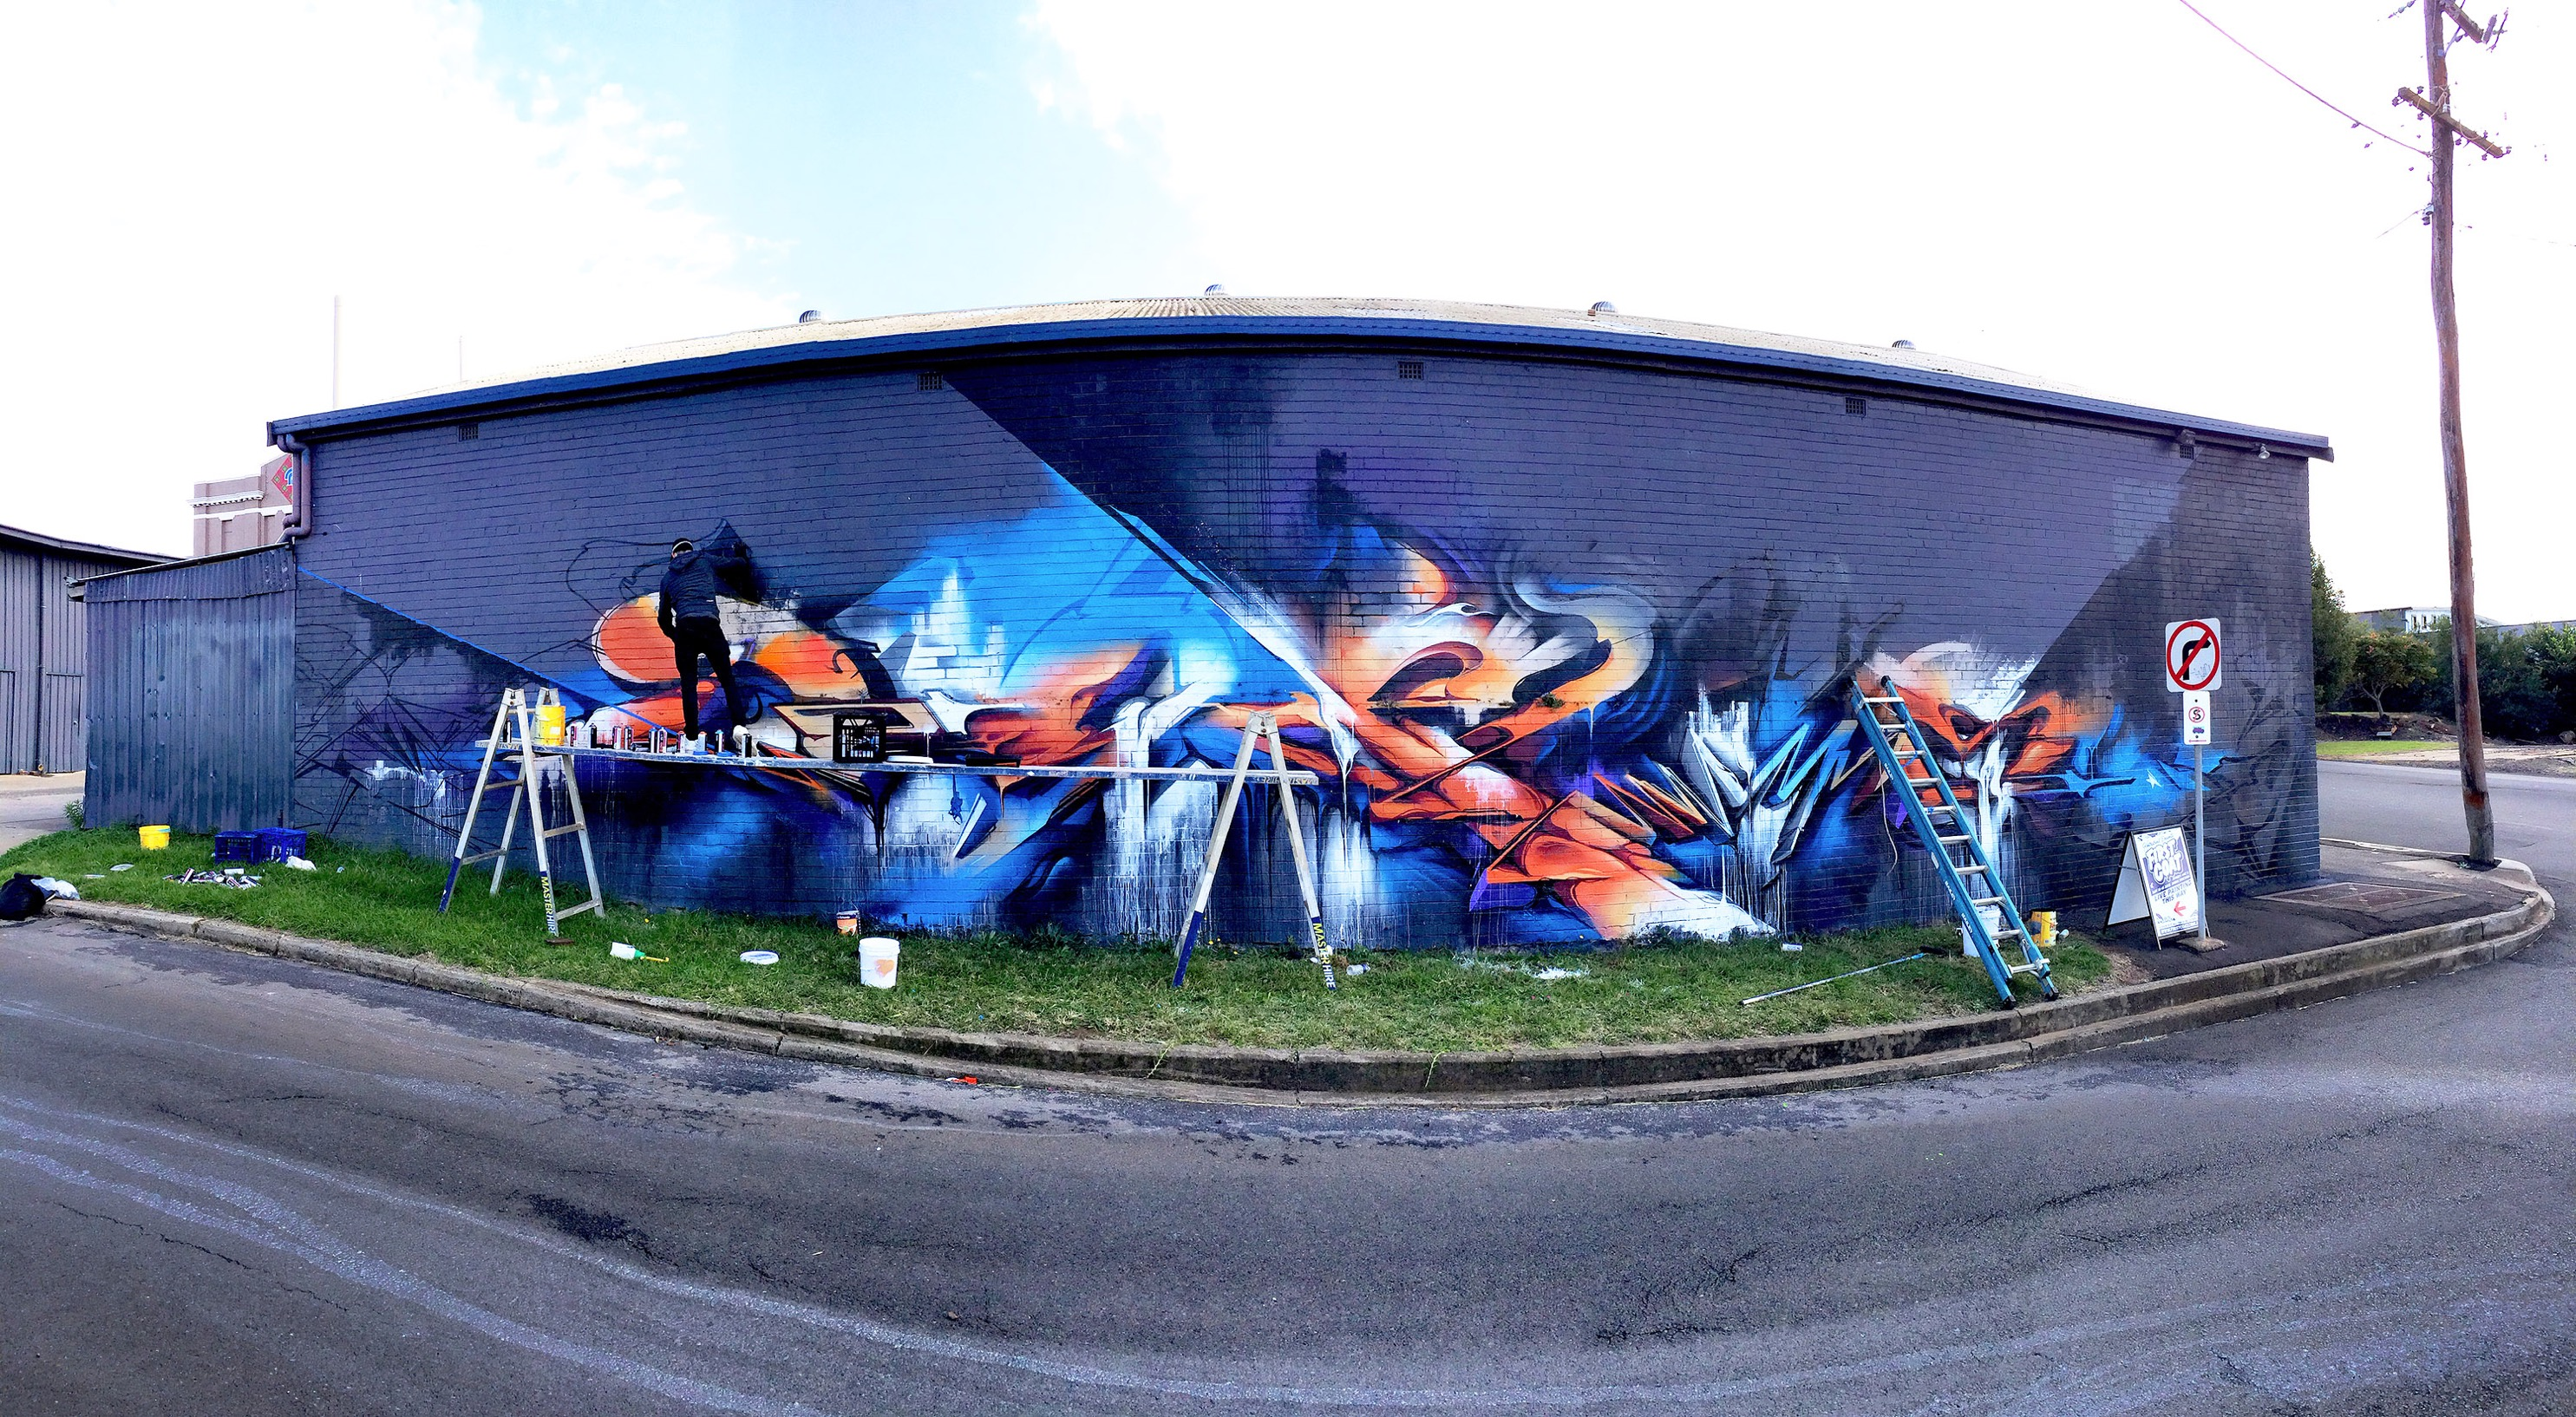 A work by Does - Toowoomba australia mural 1